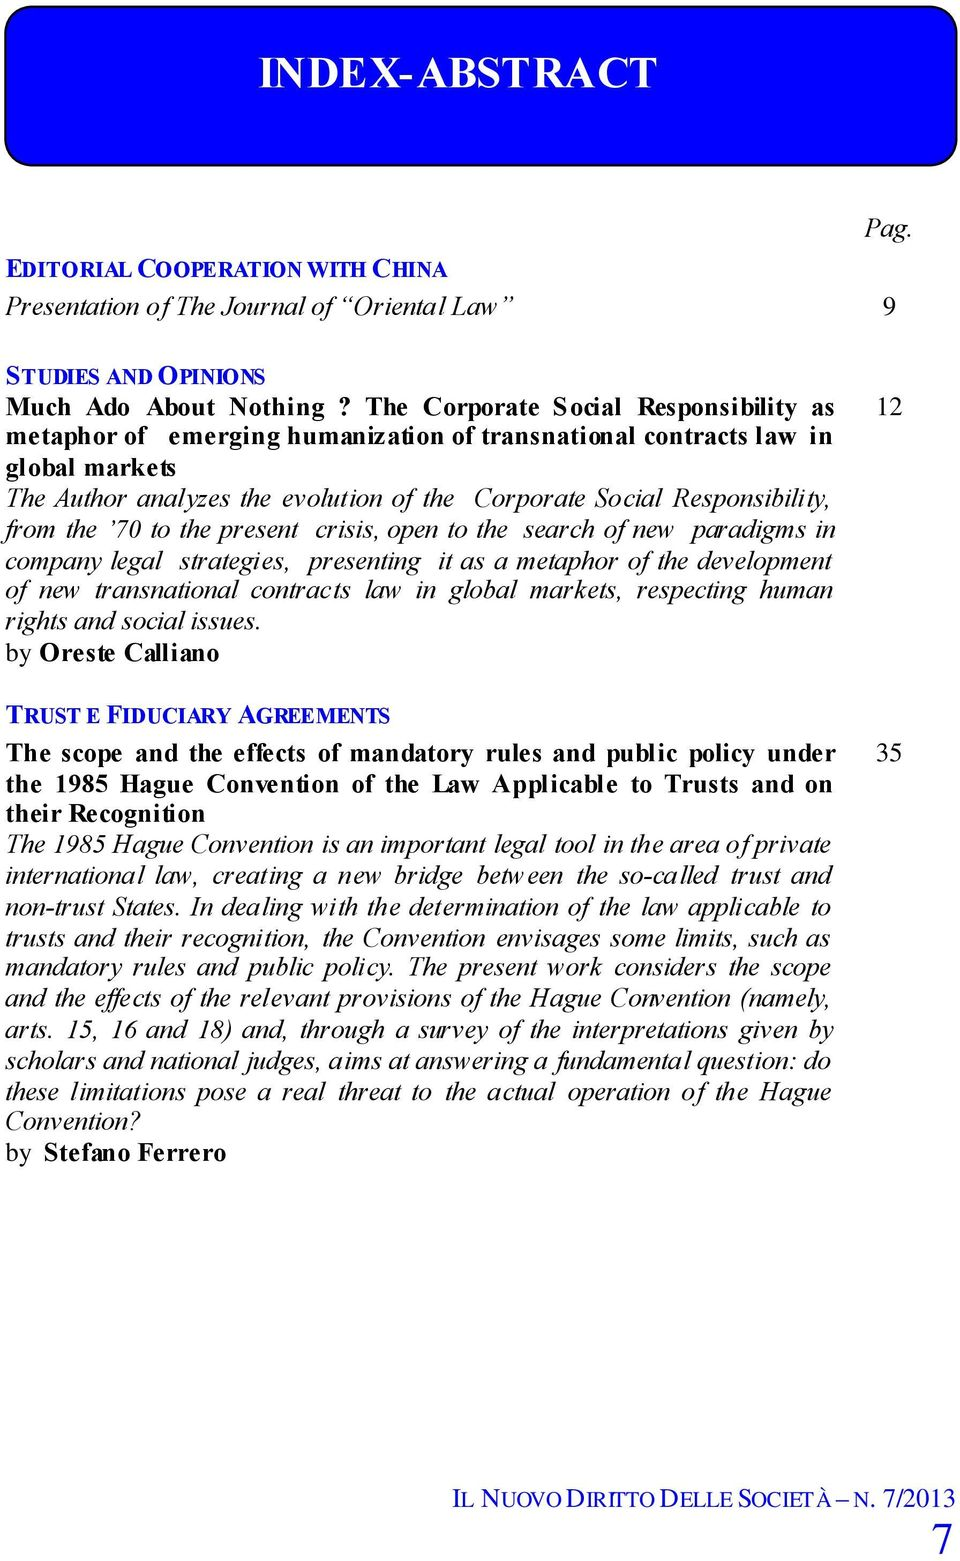 from the 70 to the present crisis, open to the search of new paradigms in company legal strategies, presenting it as a metaphor of the development of new transnational contracts law in global